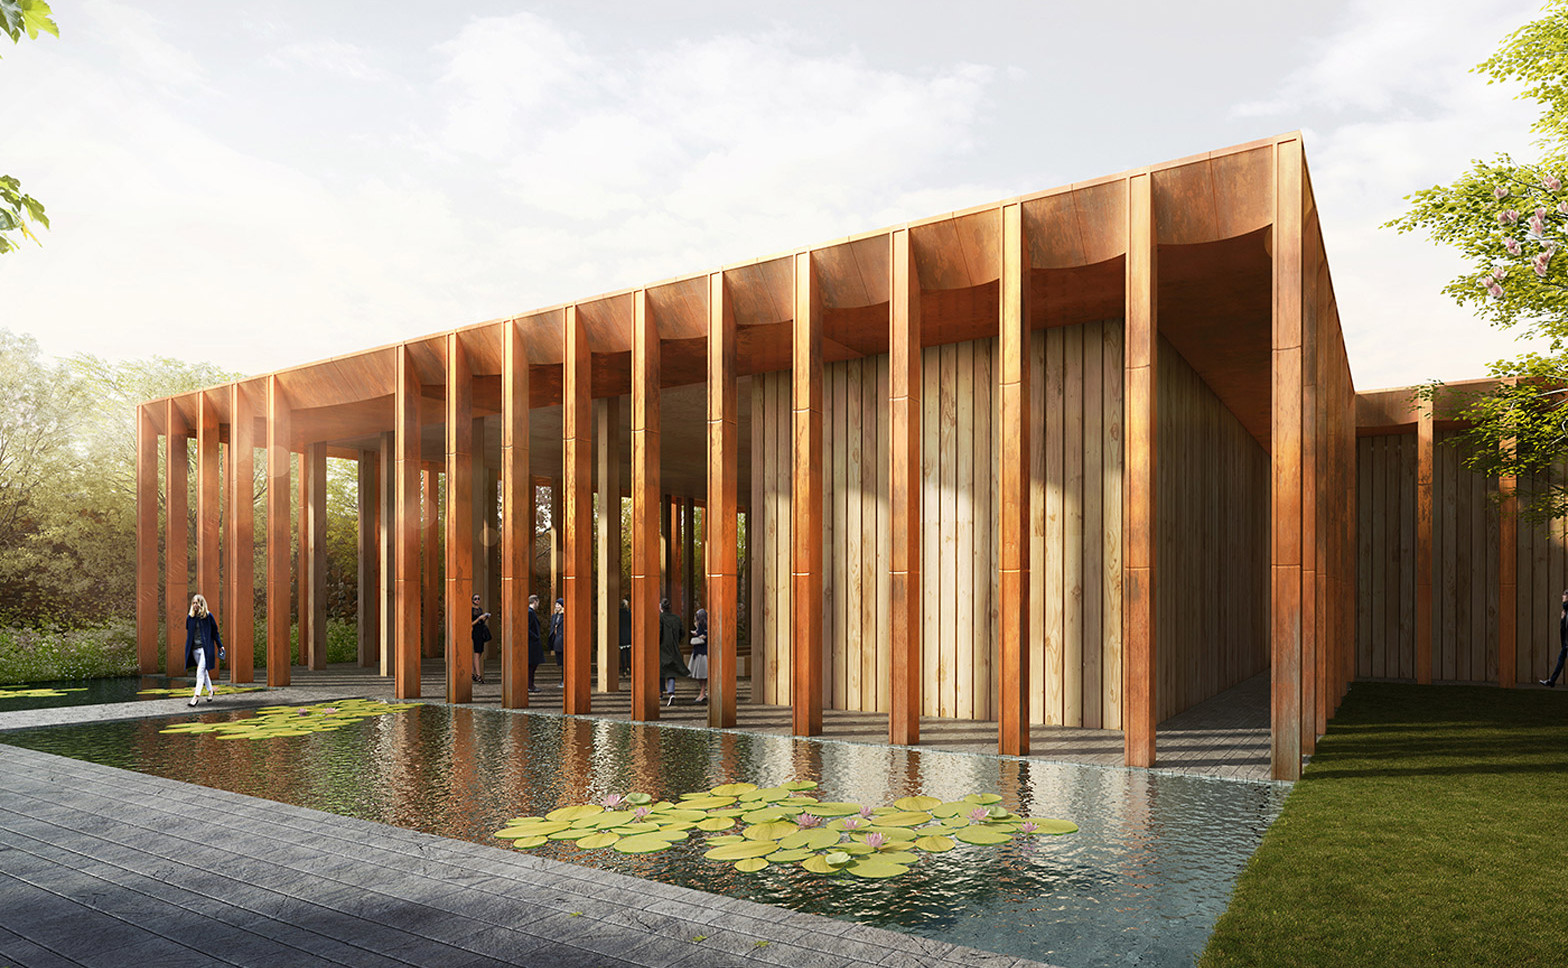 acacia-remembrance-sanctuary-chrofi-mcgregor-coxall-architecture-landscape-gps-tracking-graves-death-sydney-australia_dezeen_1568_8